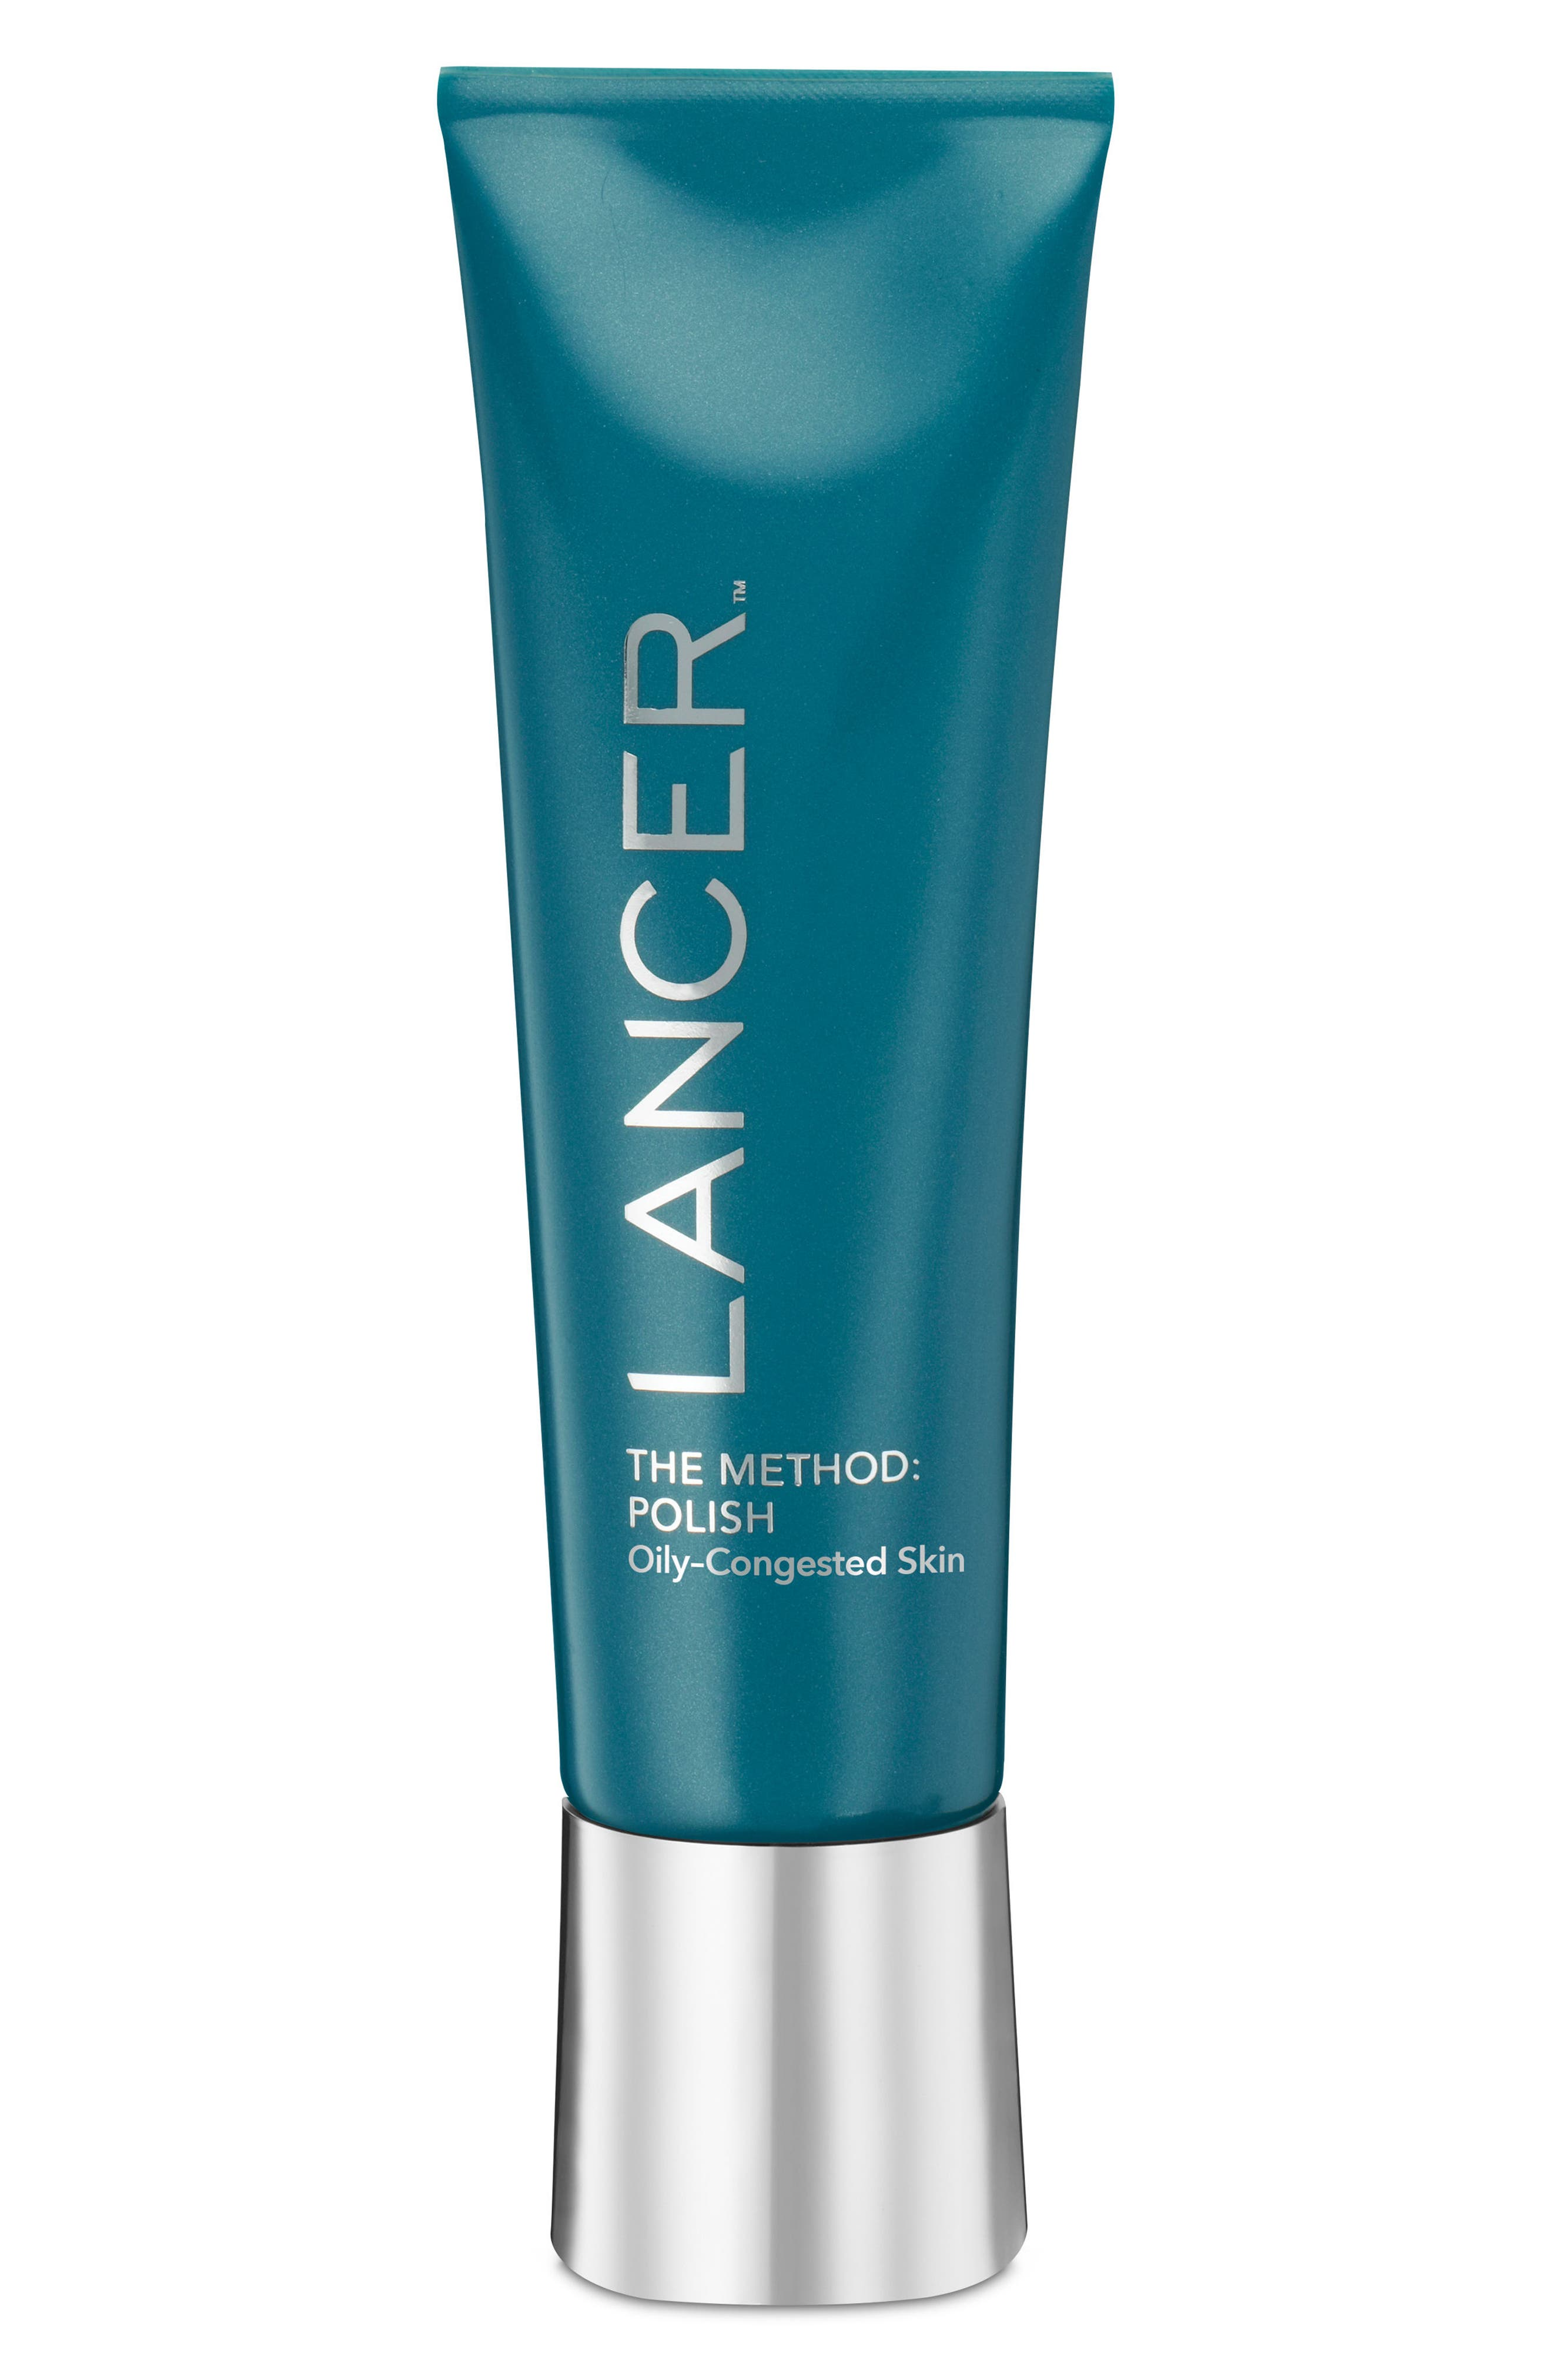 The Method: Polish Exfoliator For Oily To Congested Skin